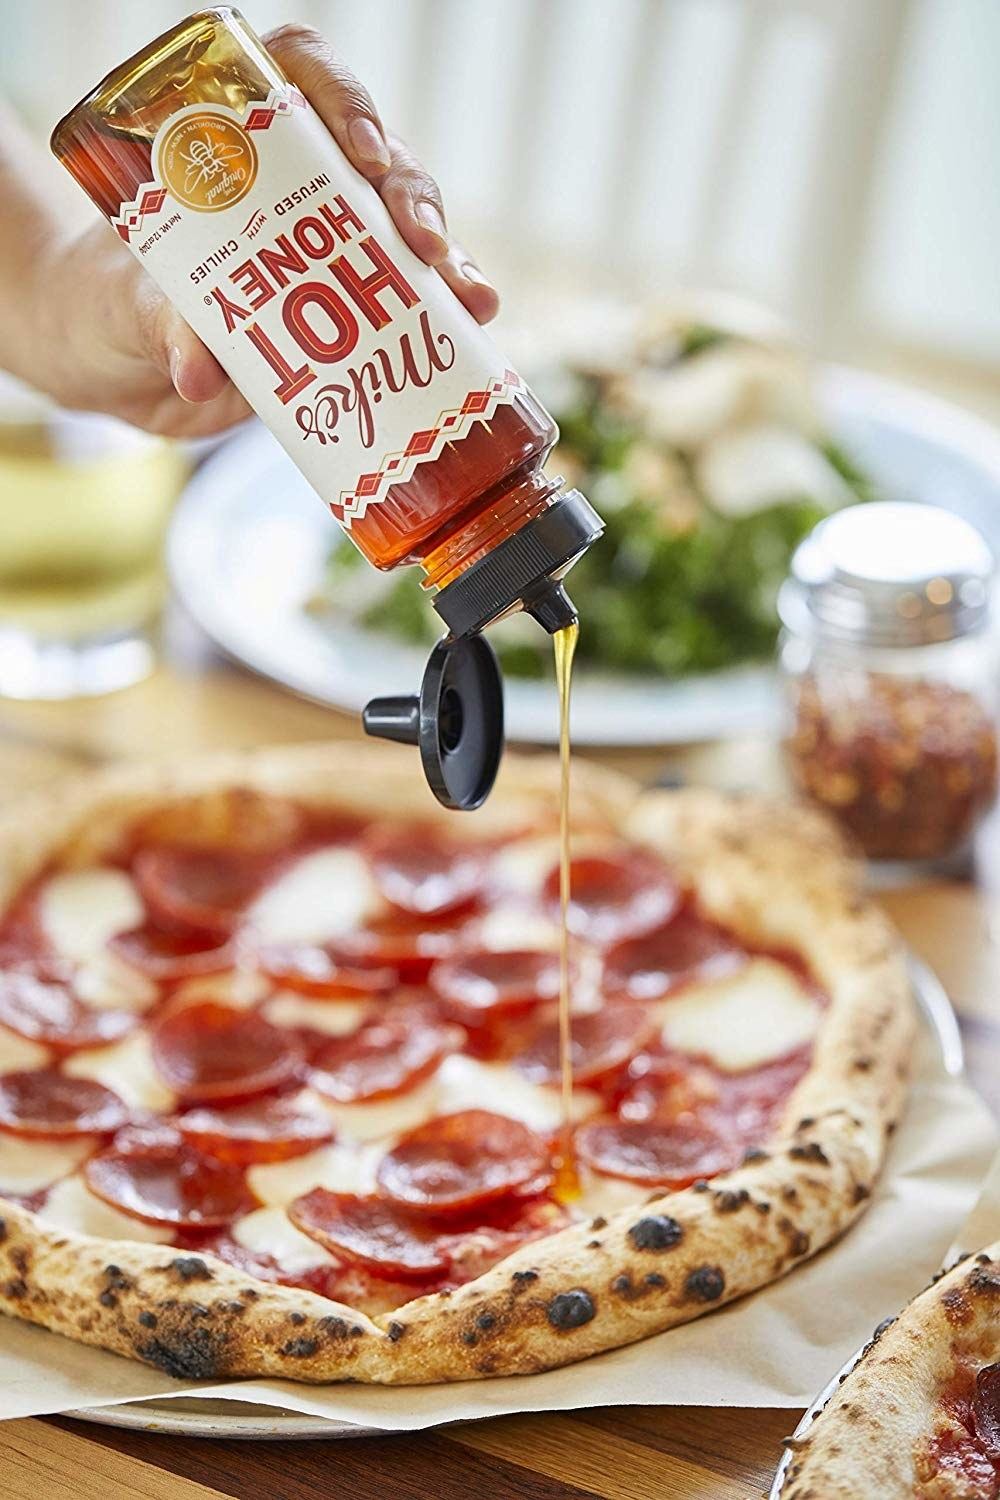 Someone pouring Mike's Hot Honey on a pizza.